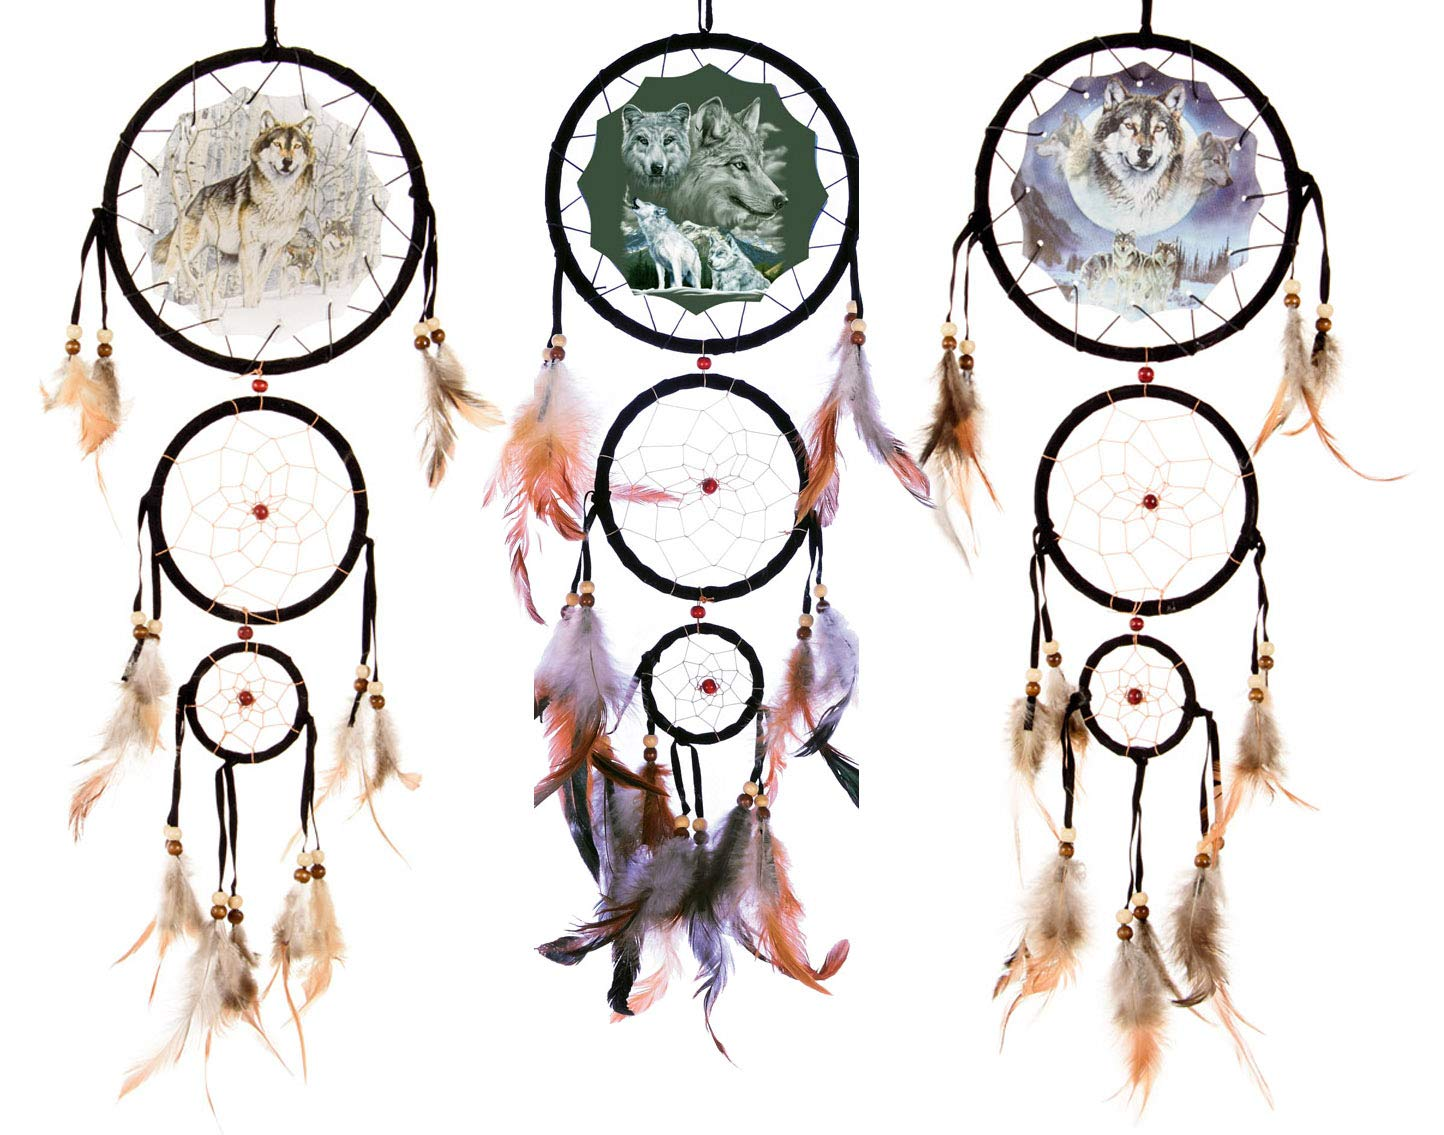 OBI 20'' Long Wolf Dream Catchers 3pc Gift Set - Wildlife Wolves Mandella - Decorative Wall Hanging Ornament Decor -